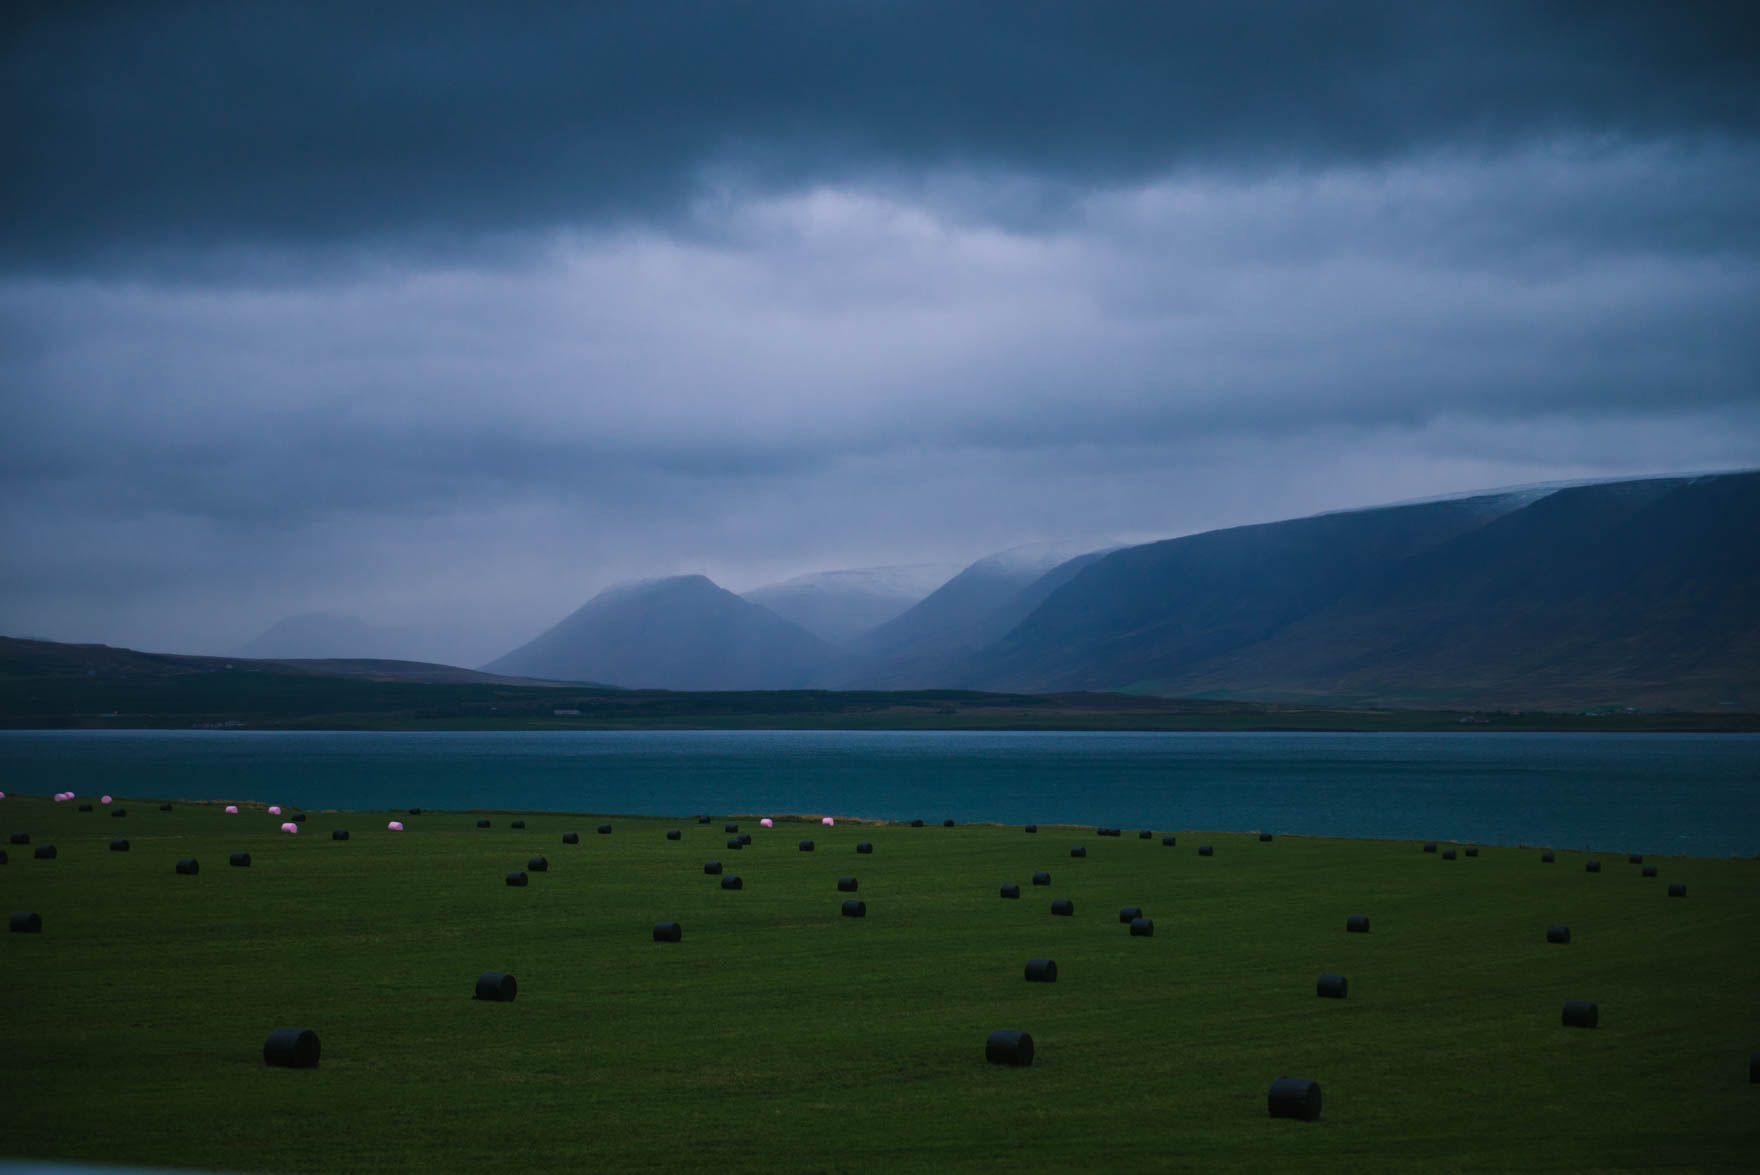 Wrapped haybales in the grassy lawns of a dark and misty day